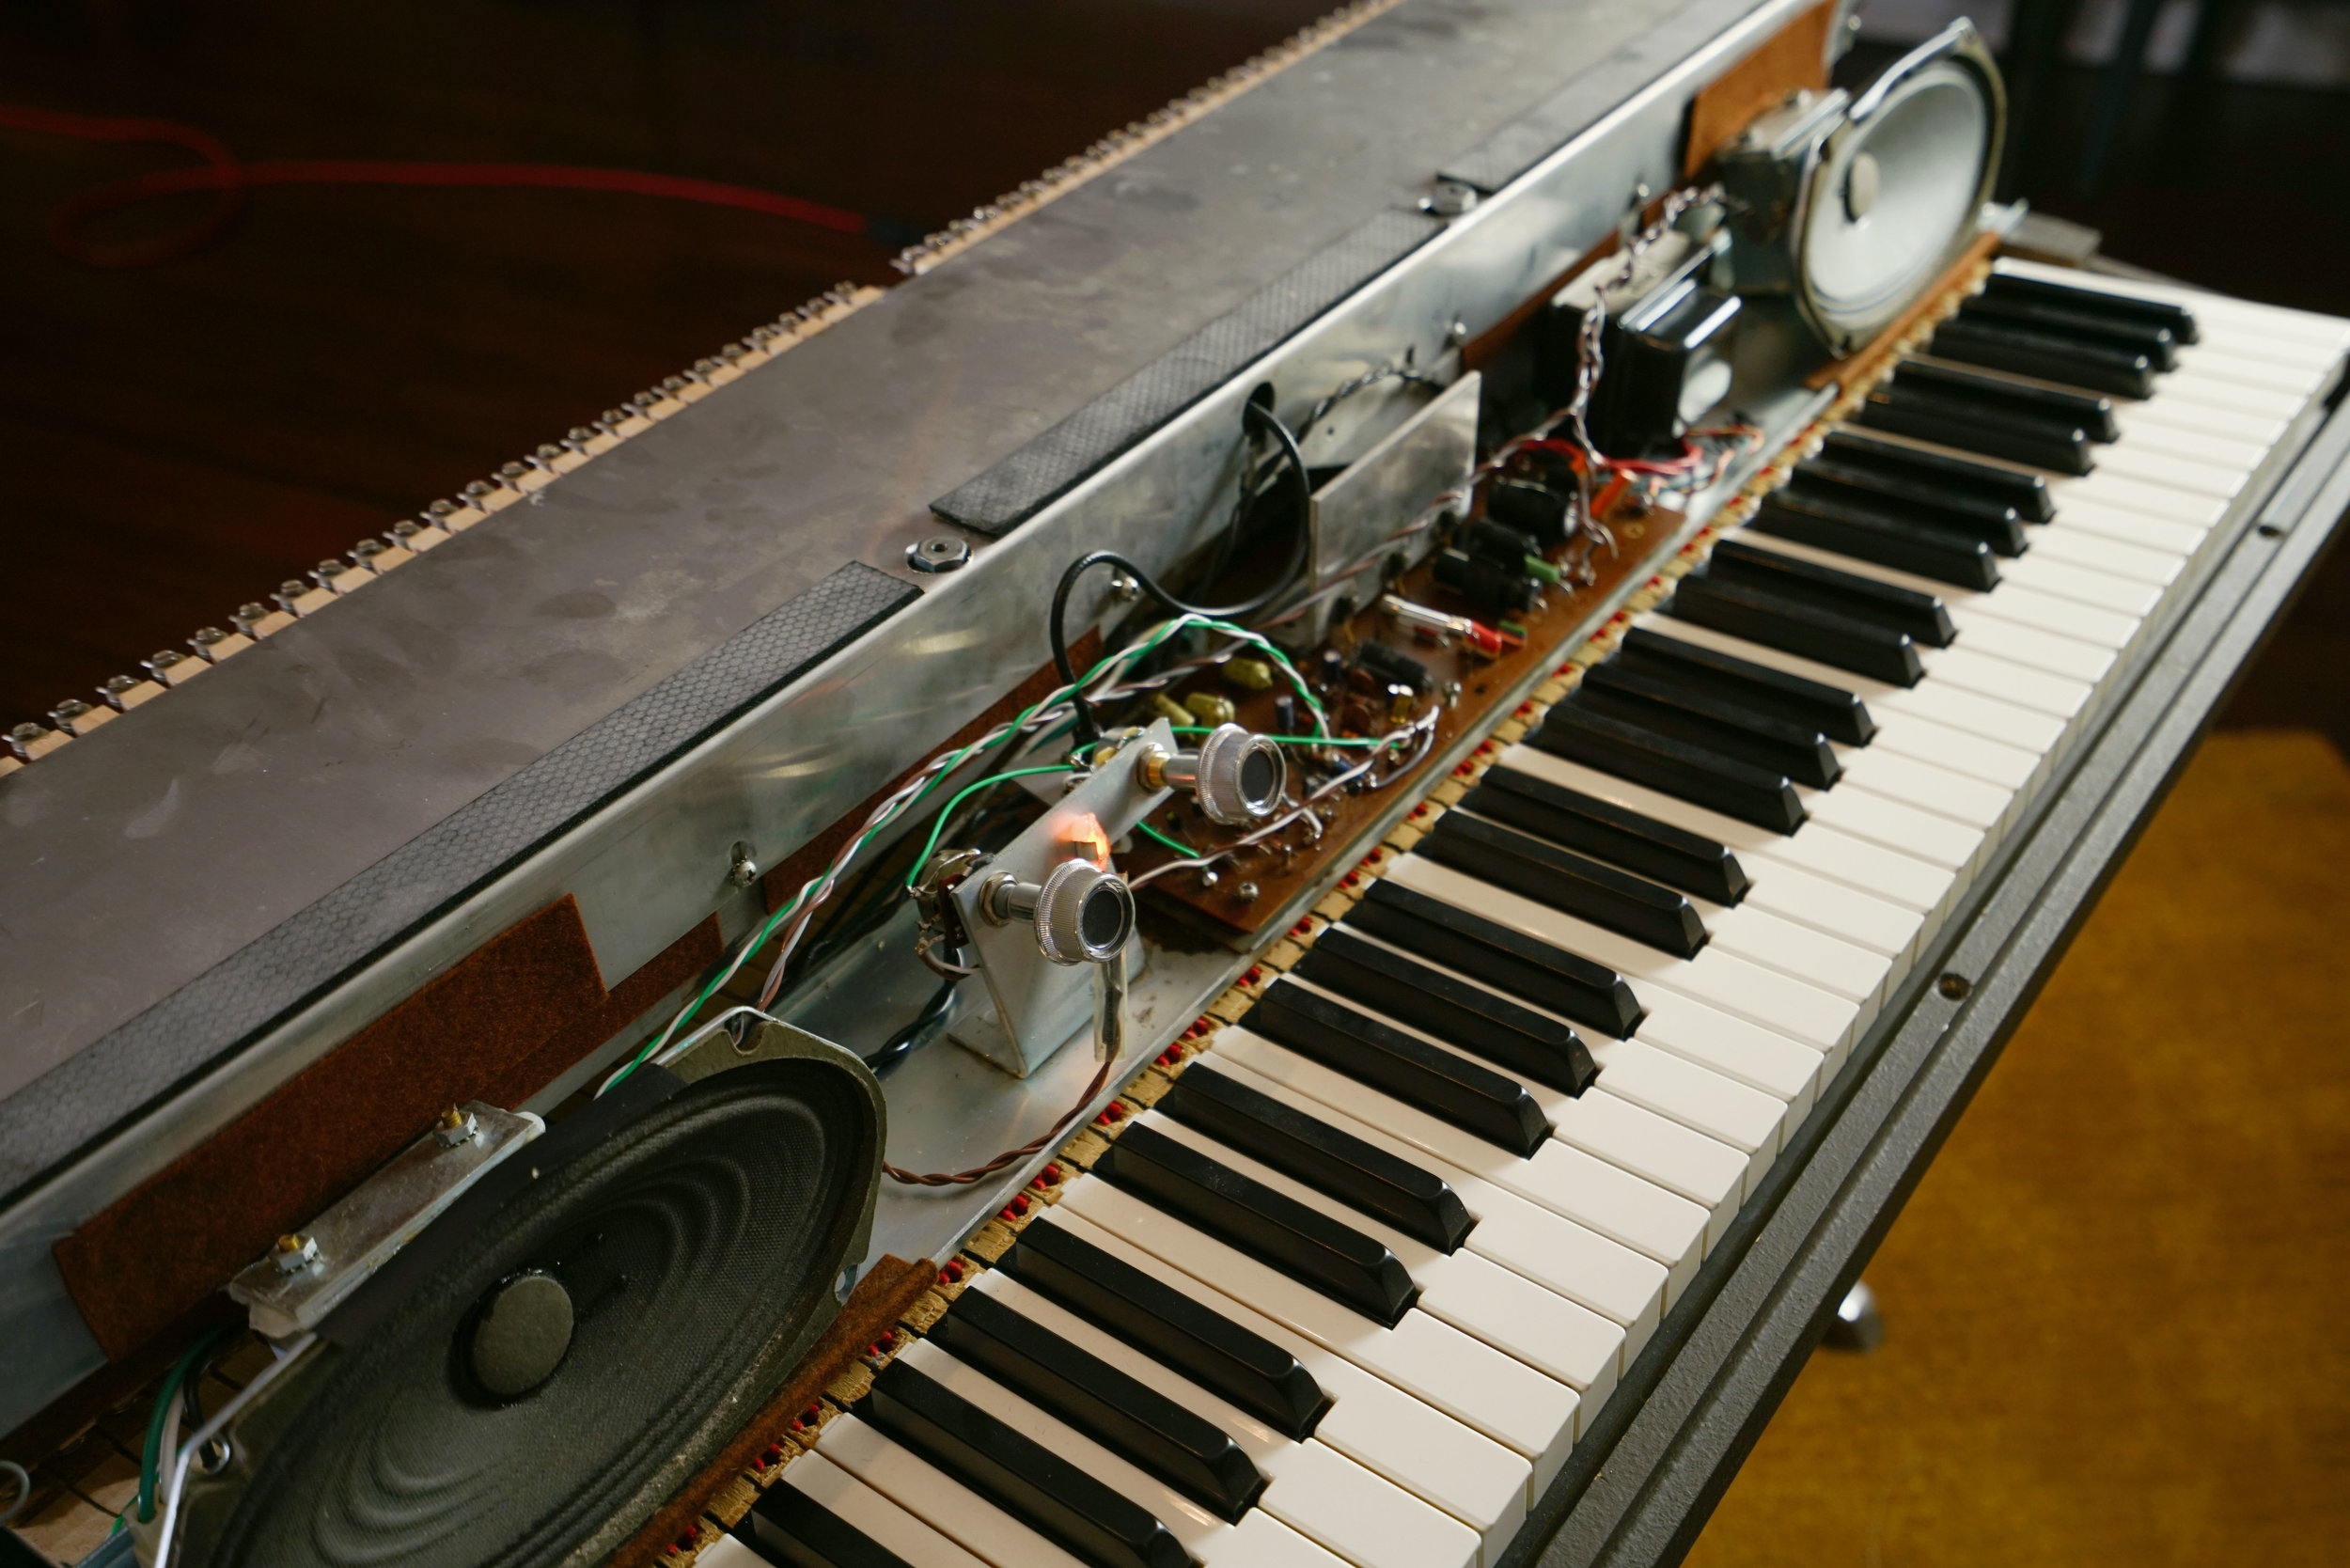 On a 140-series Wurlitzer, the metal lid functions as a shield. Because the lid of a 200/200a Wurlitzer is plastic, it requires a metal hum shield underneath.